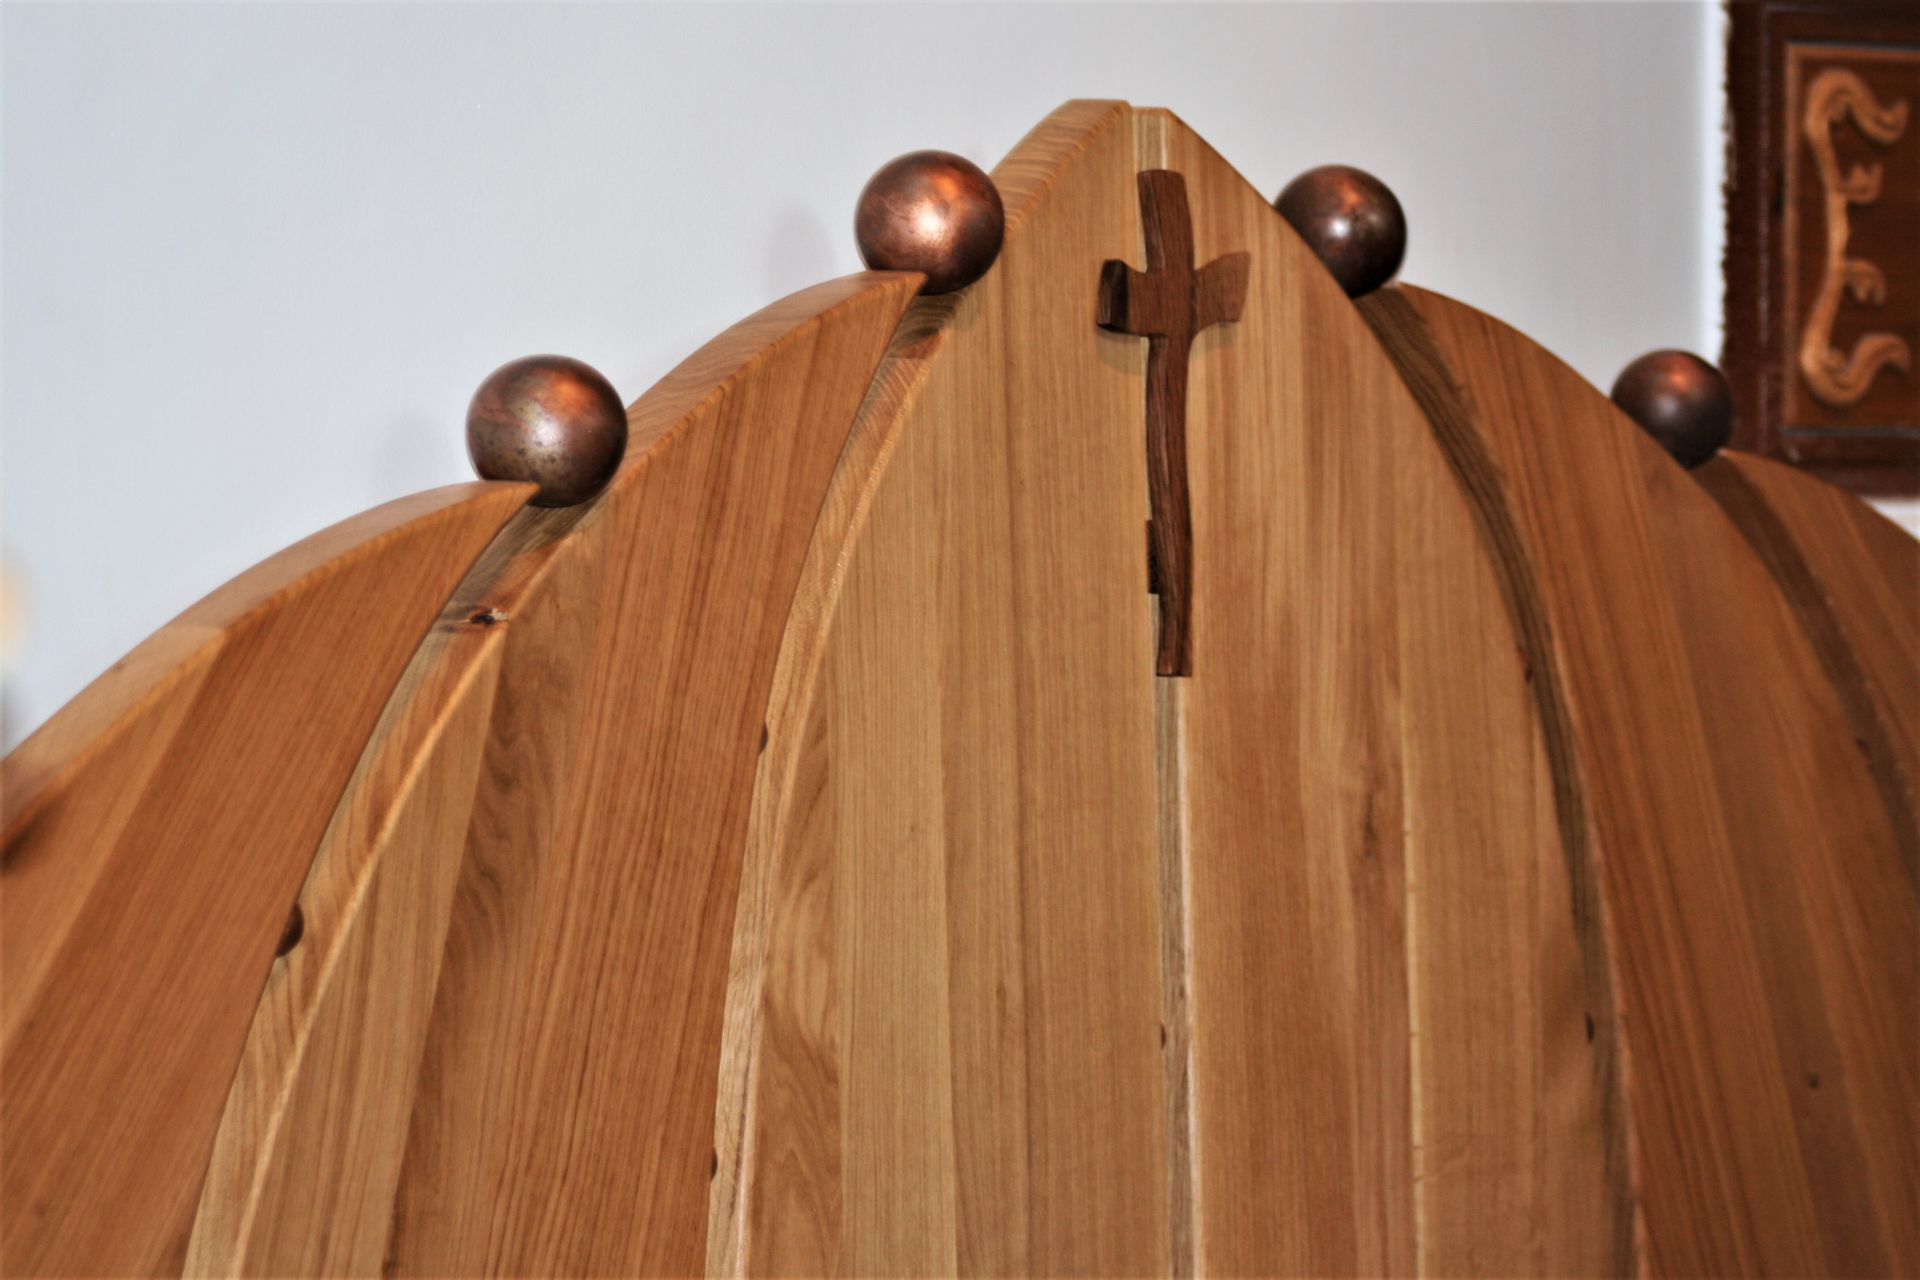 sacral wooden design Fazana church bench detail cross sanisio